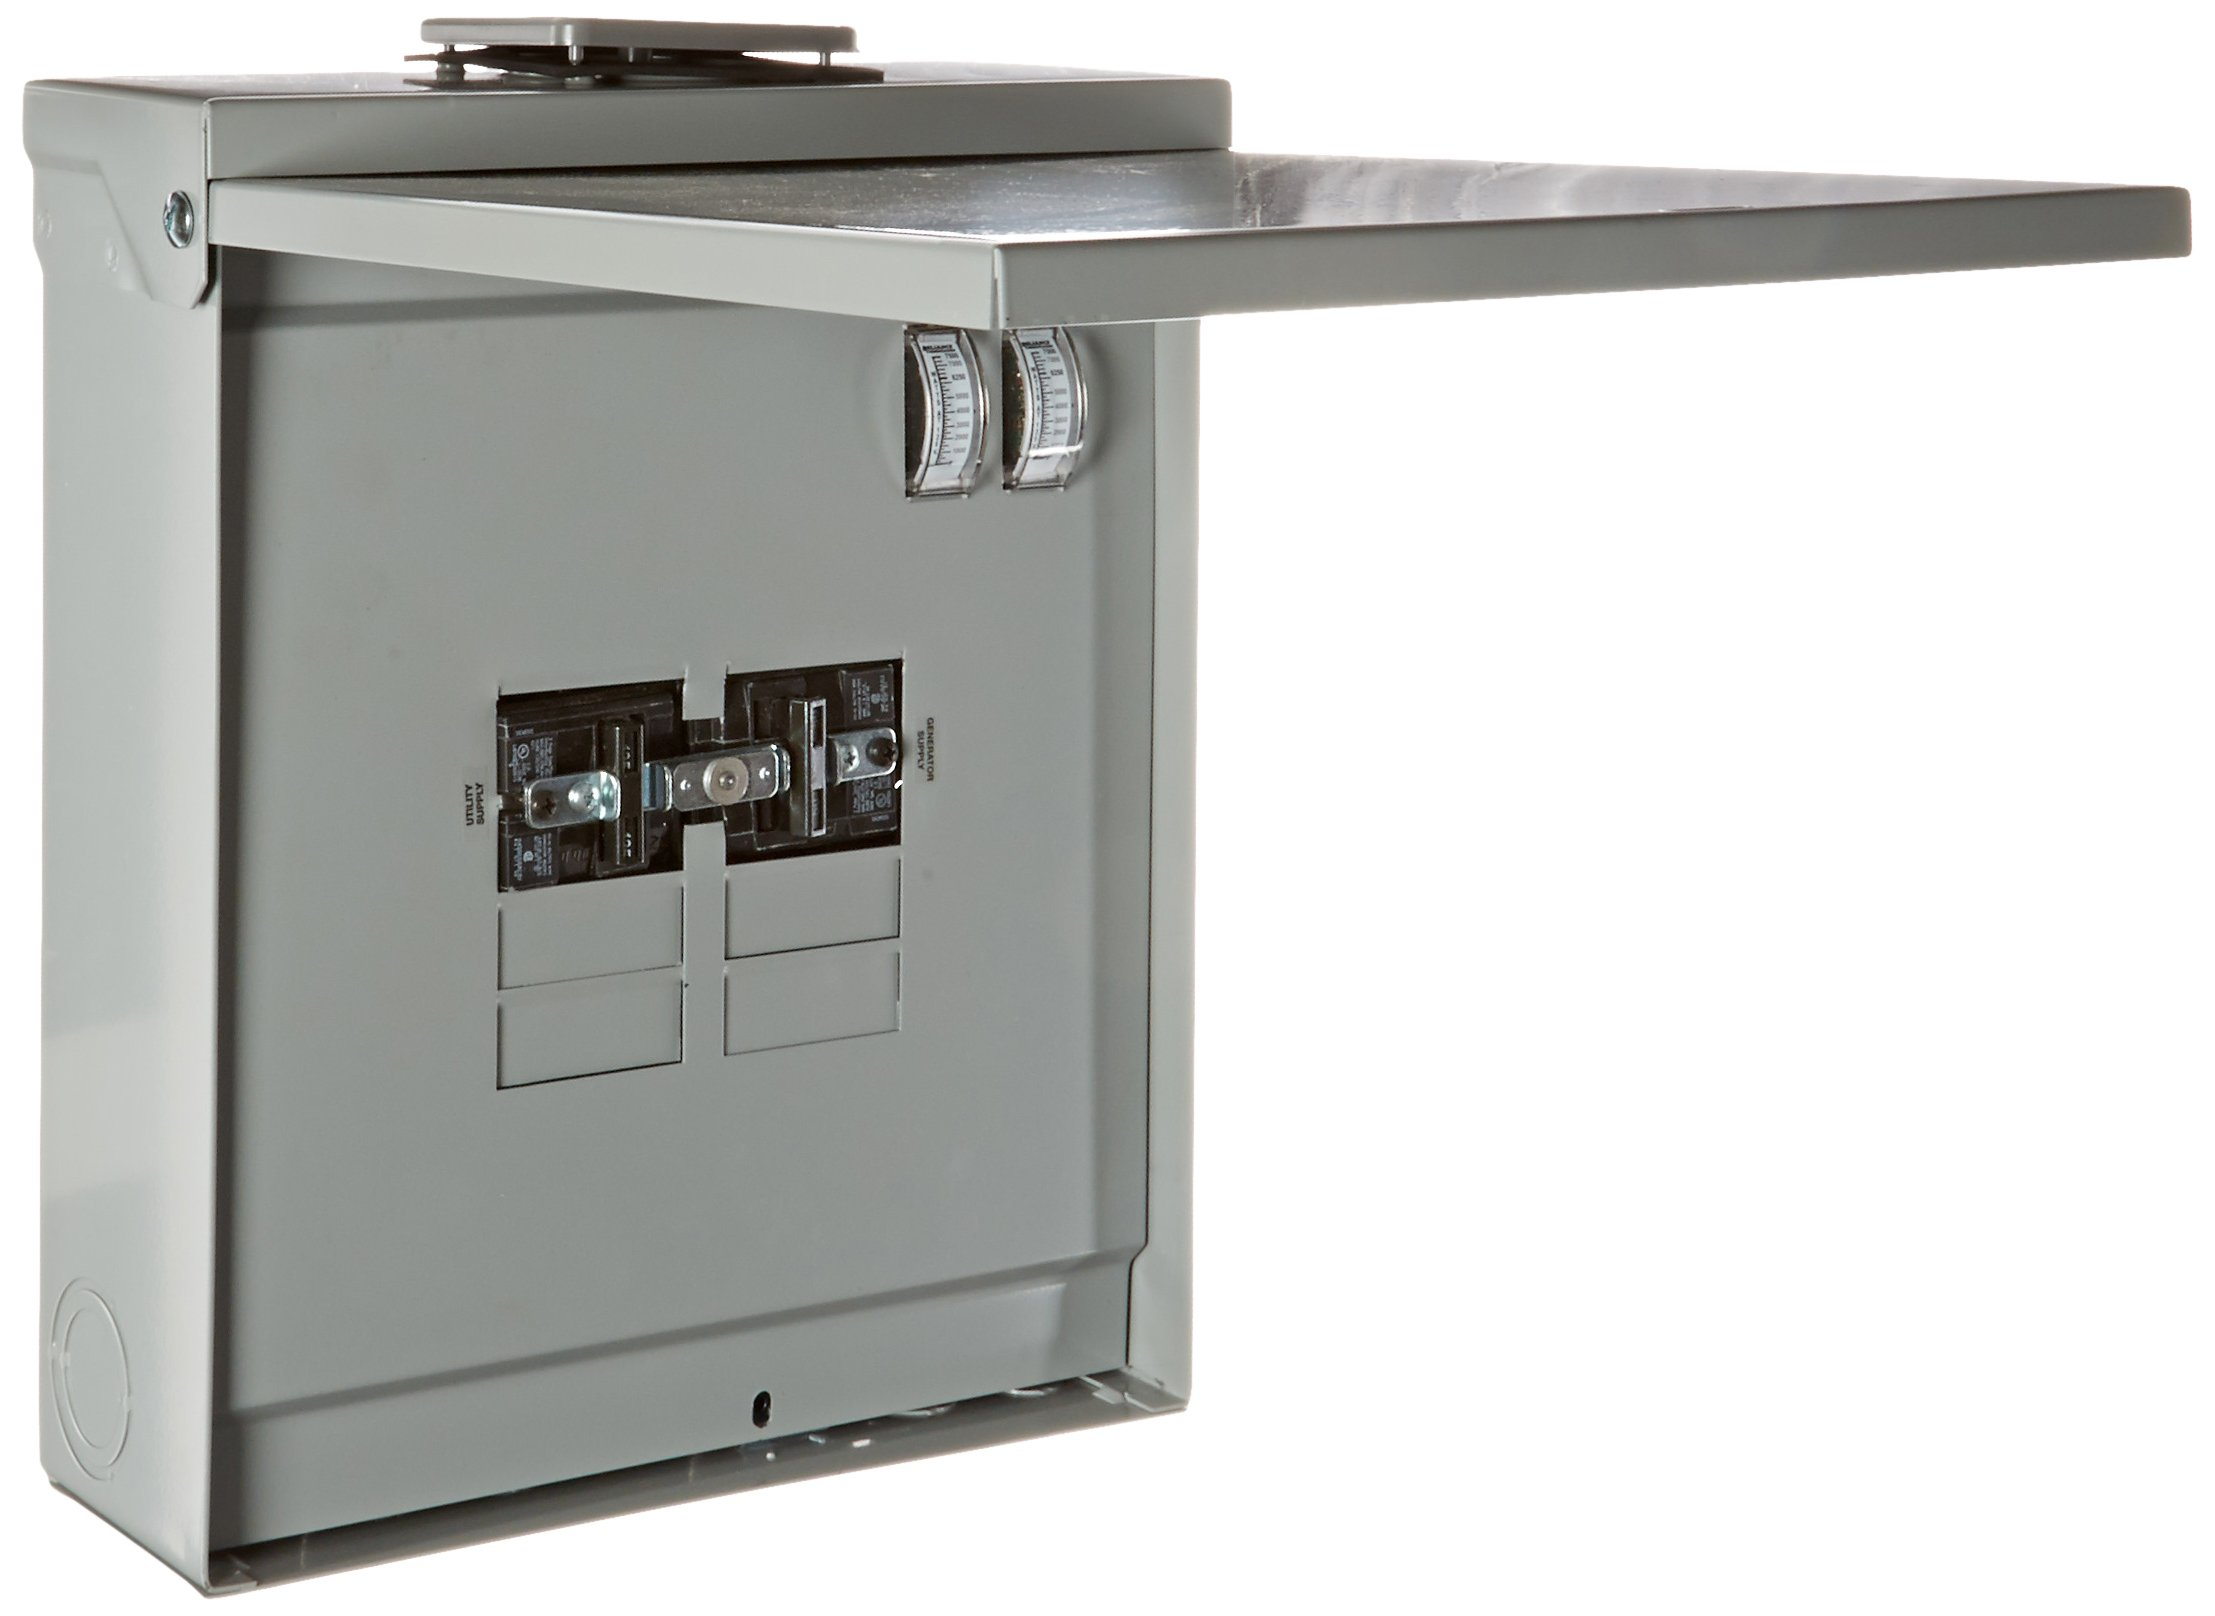 Reliance Controls Corporation TRB1205CR Transfer Panel with Meters